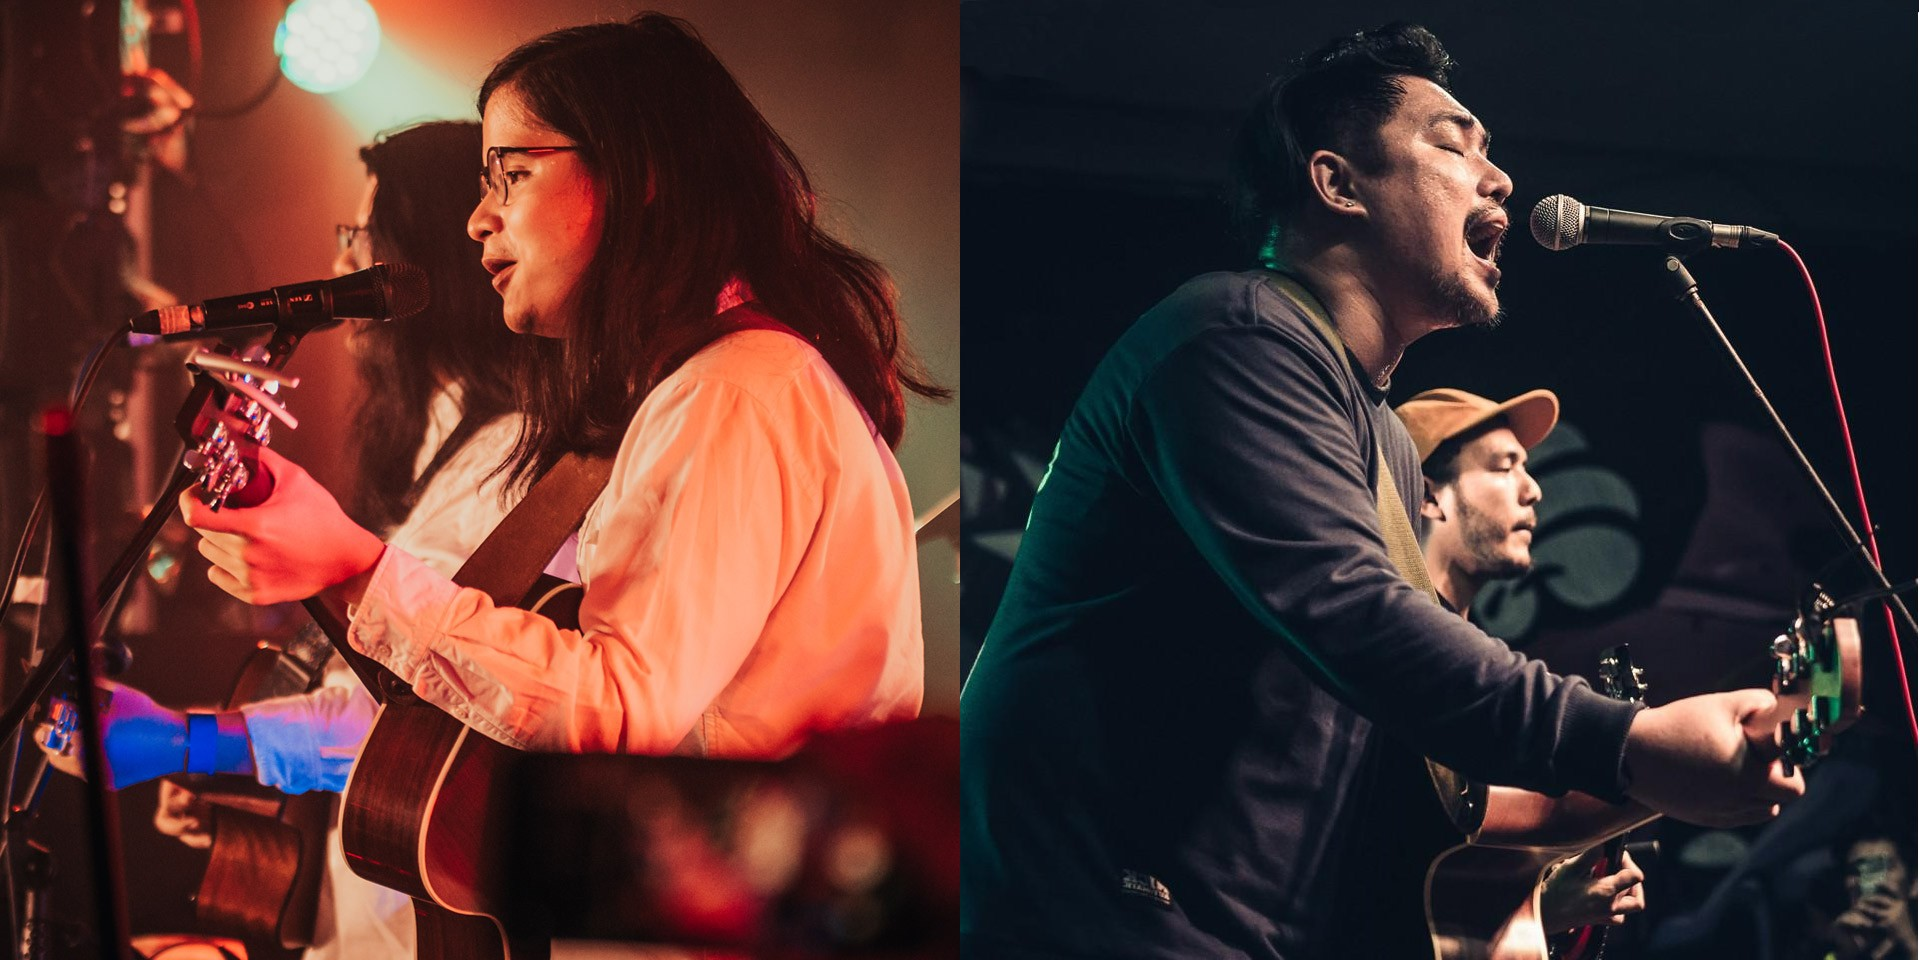 Ben&Ben, December Avenue, and more release new music on Valentine's Day